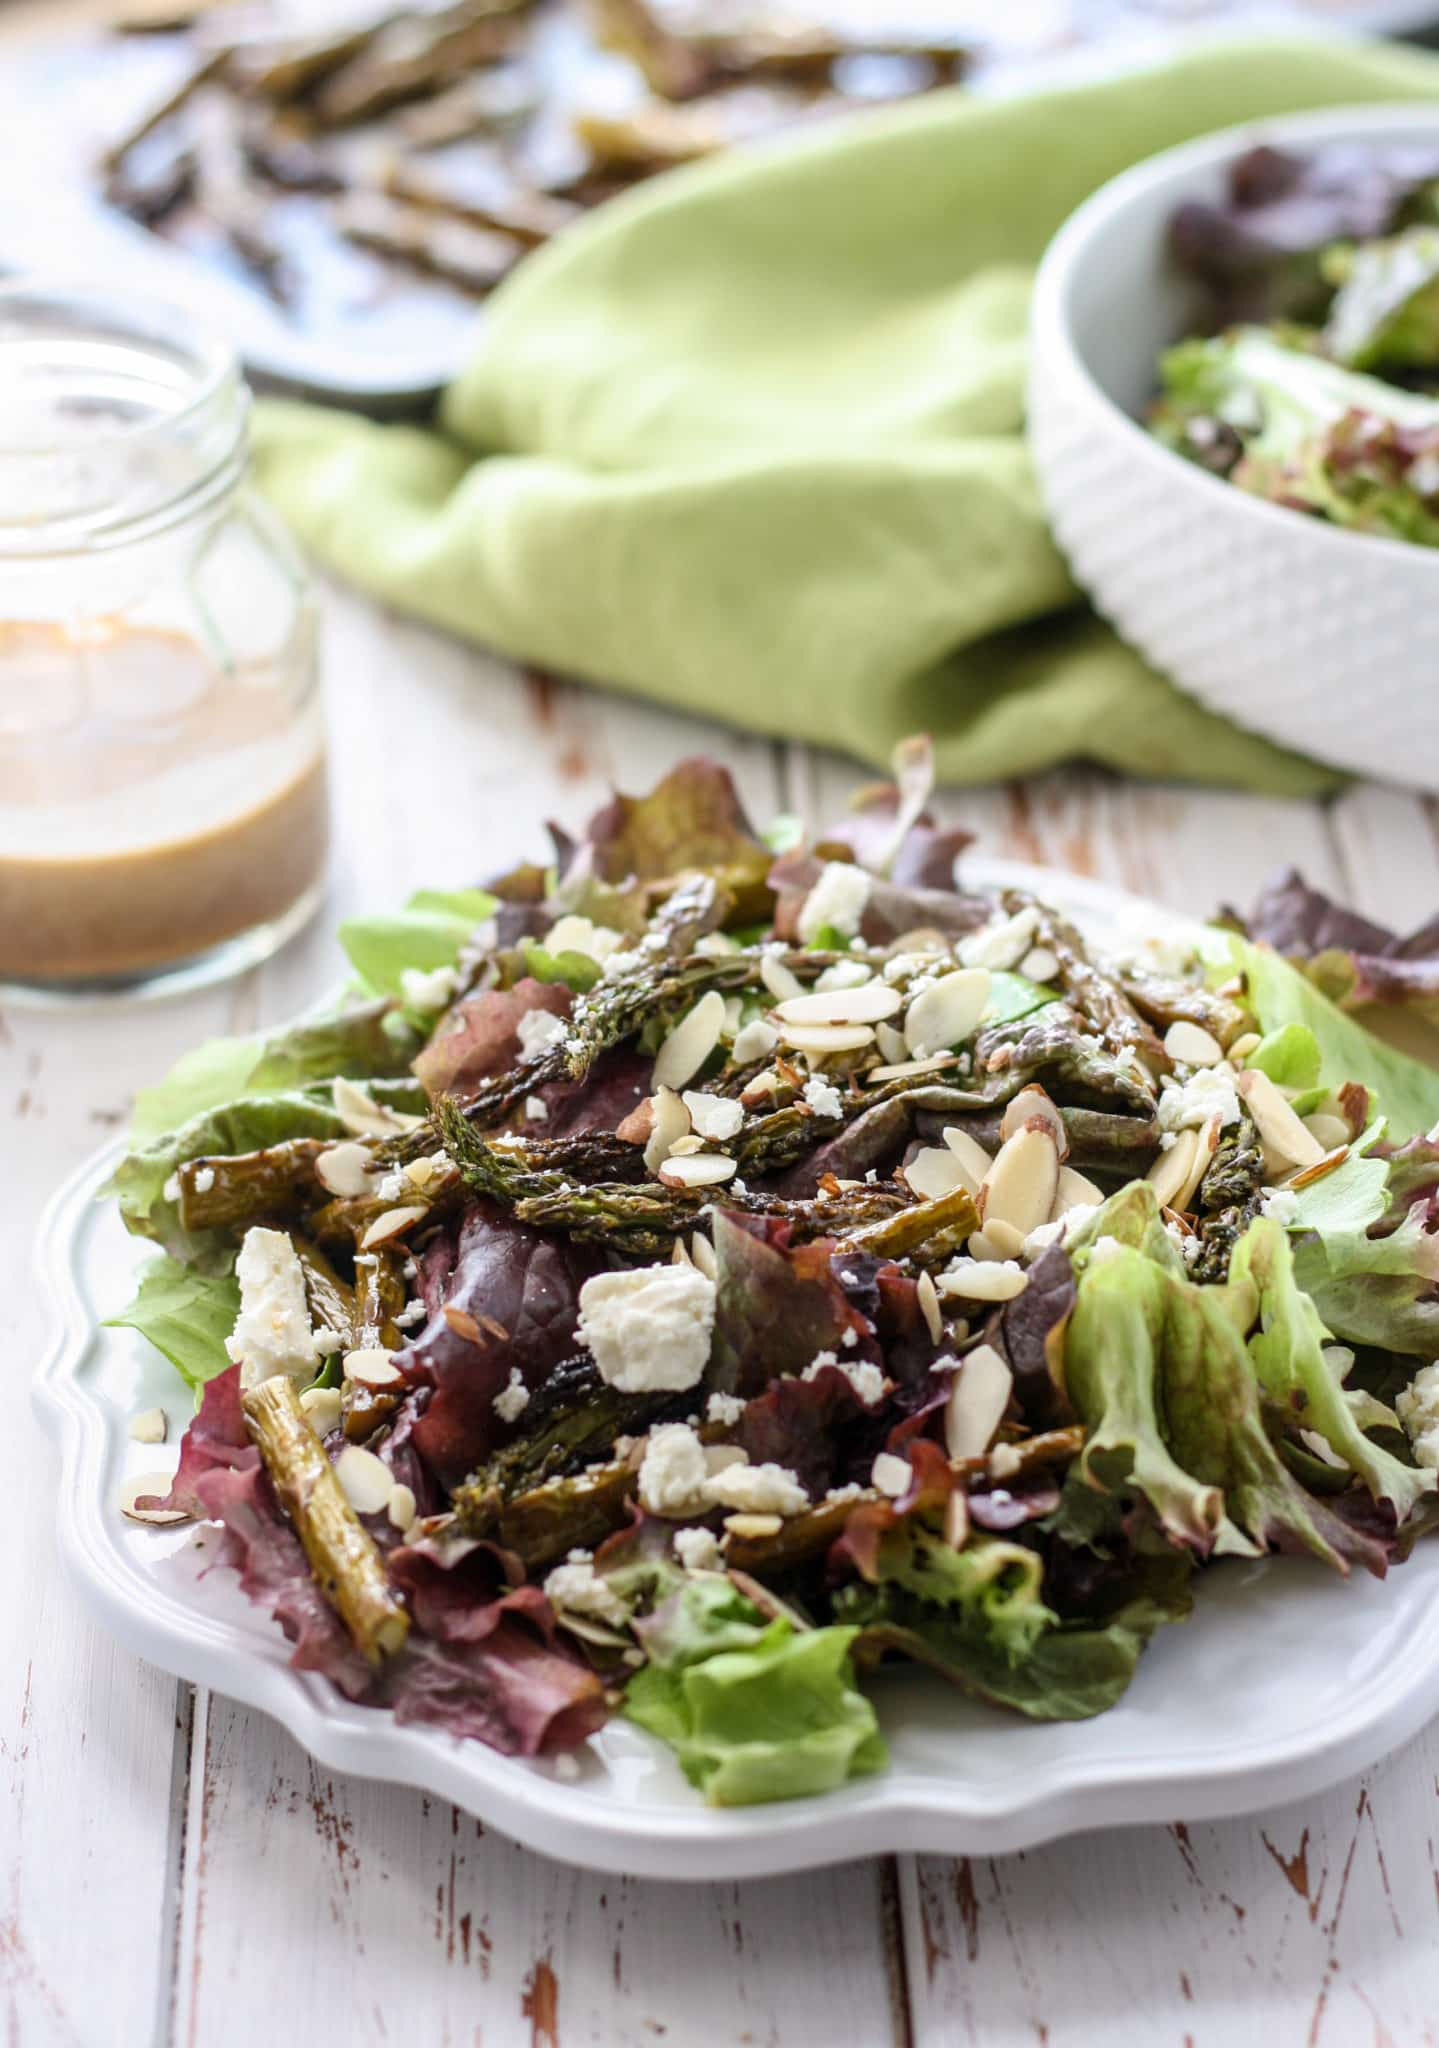 Roasted Asparagus Salad  Roasted Asparagus Salad with Balsamic Almond Dressing